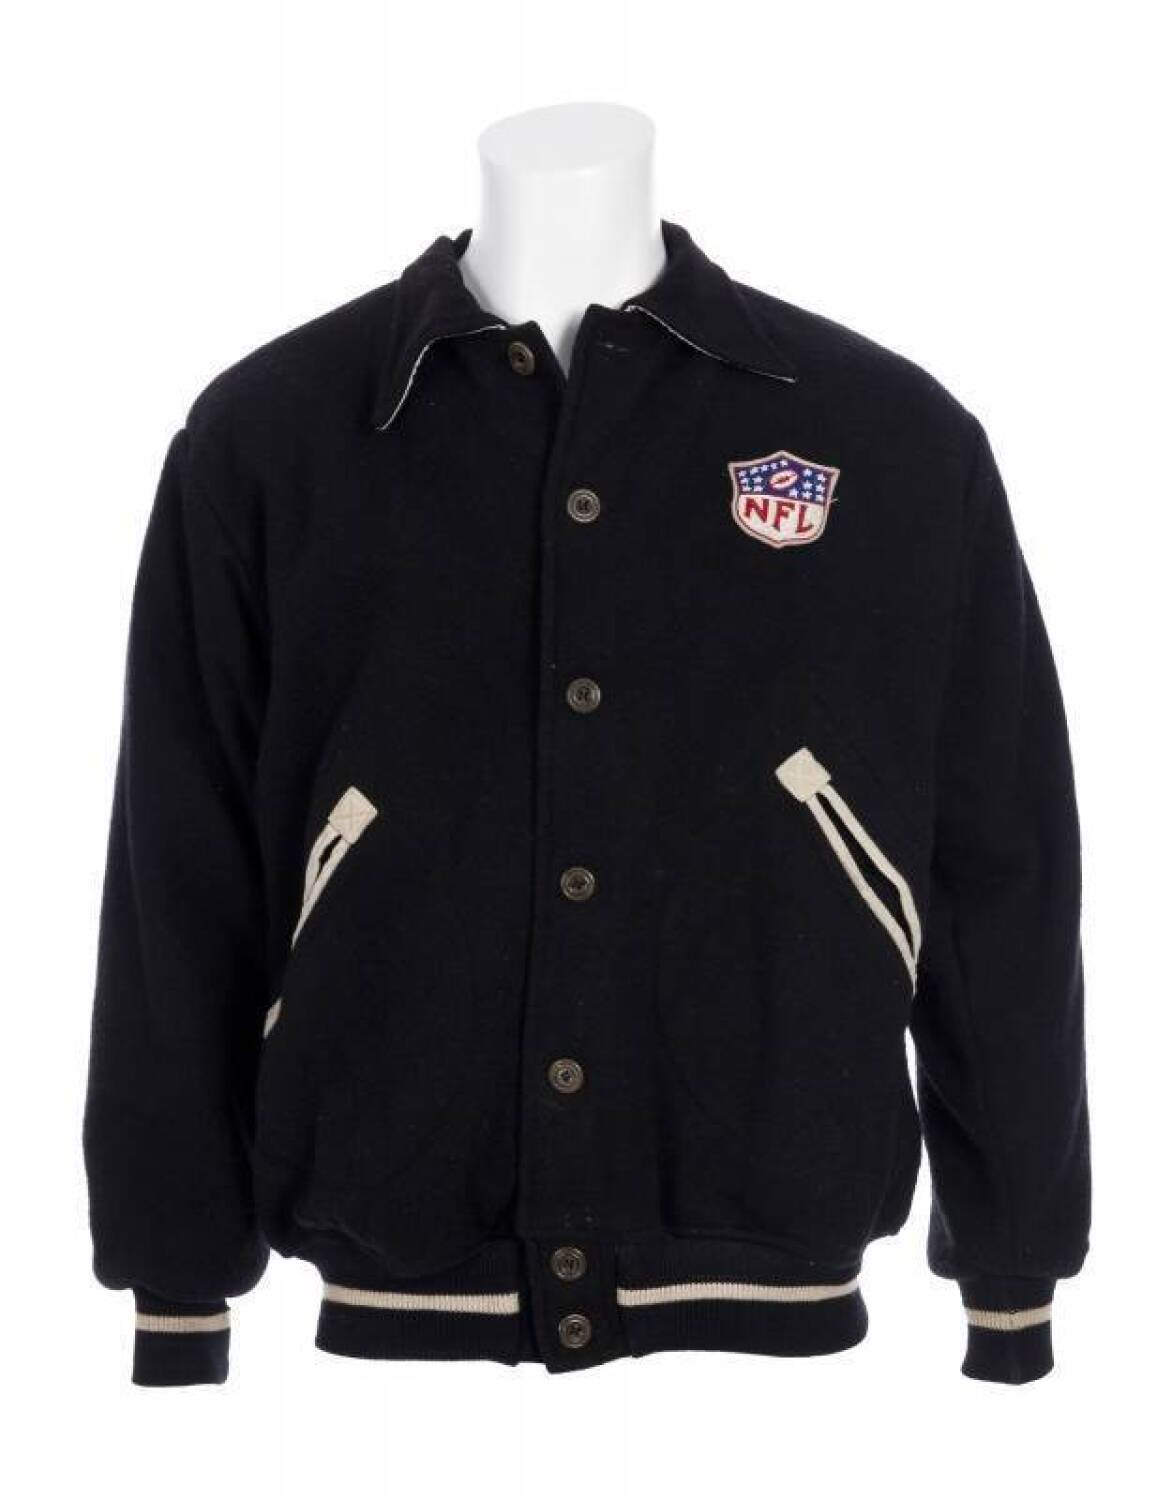 sports shoes 3292f d5222 WILLIAM JOE CARTER 1940 NFL ALL-STAR GAME JACKET - Current ...